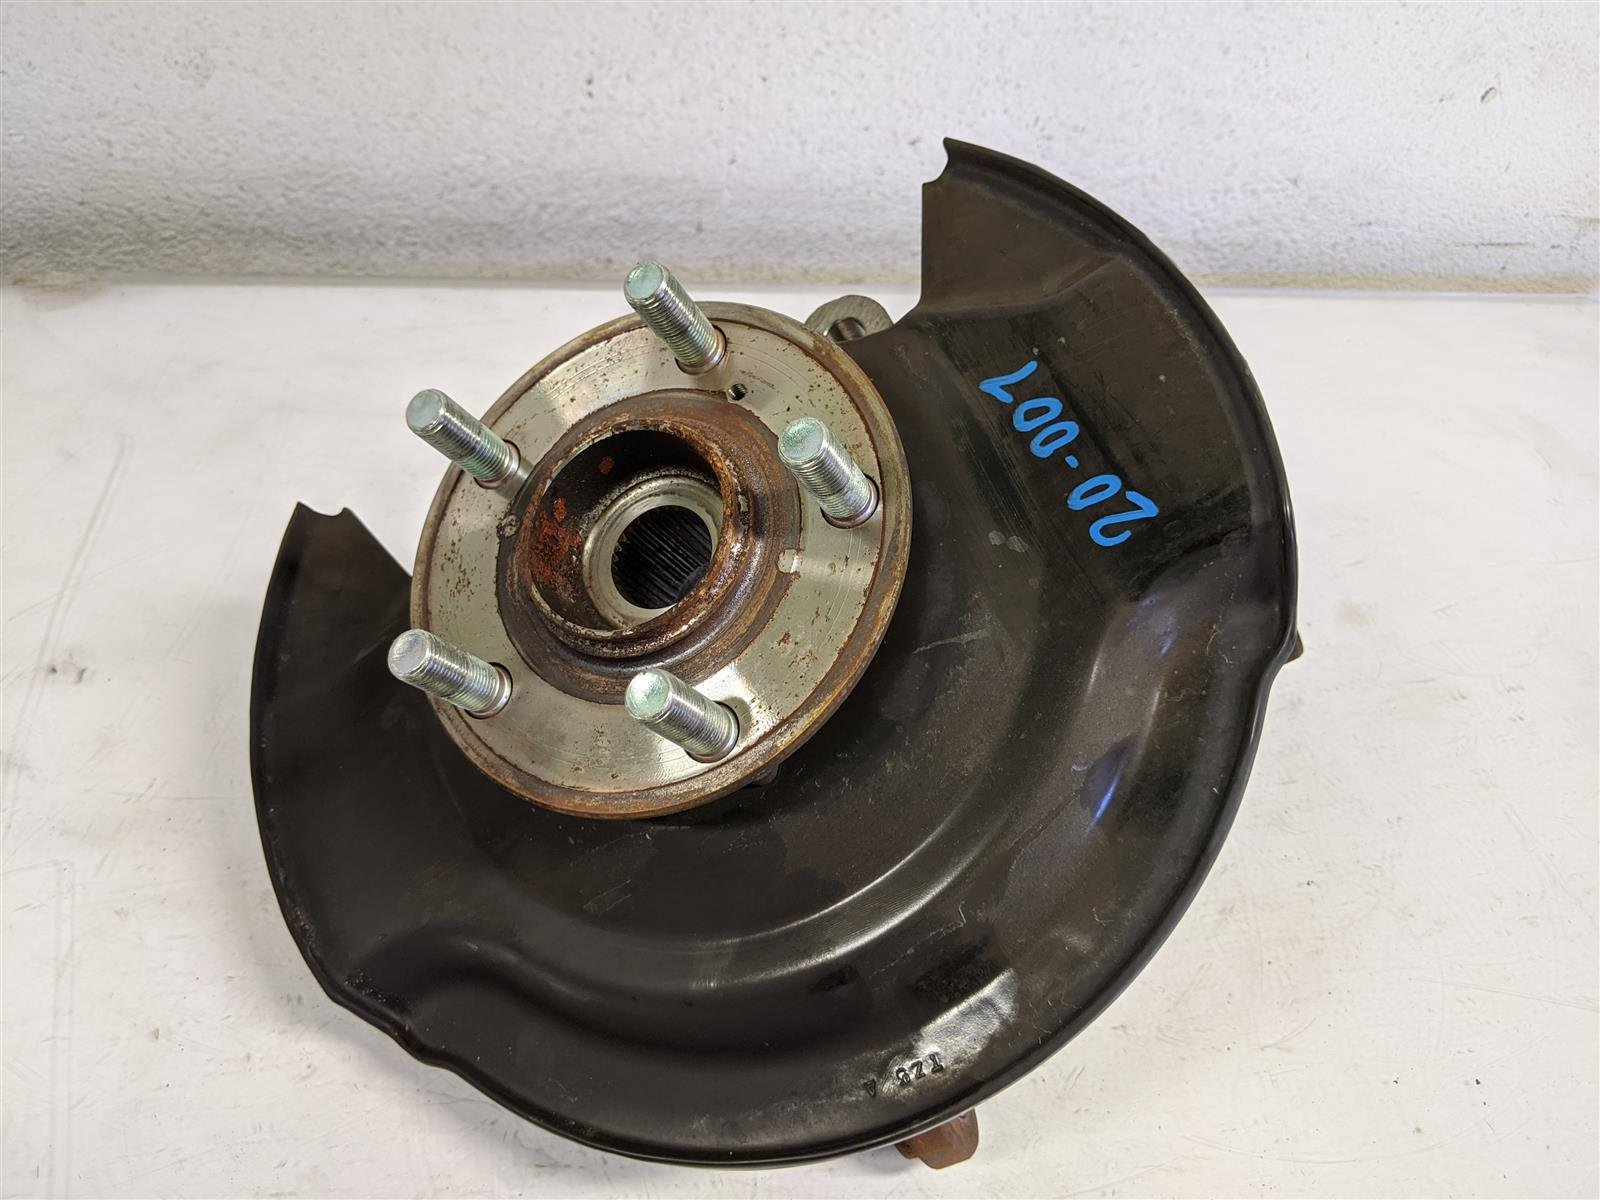 2017 Honda Pilot Front Driver Spindle Knuckle Replacement